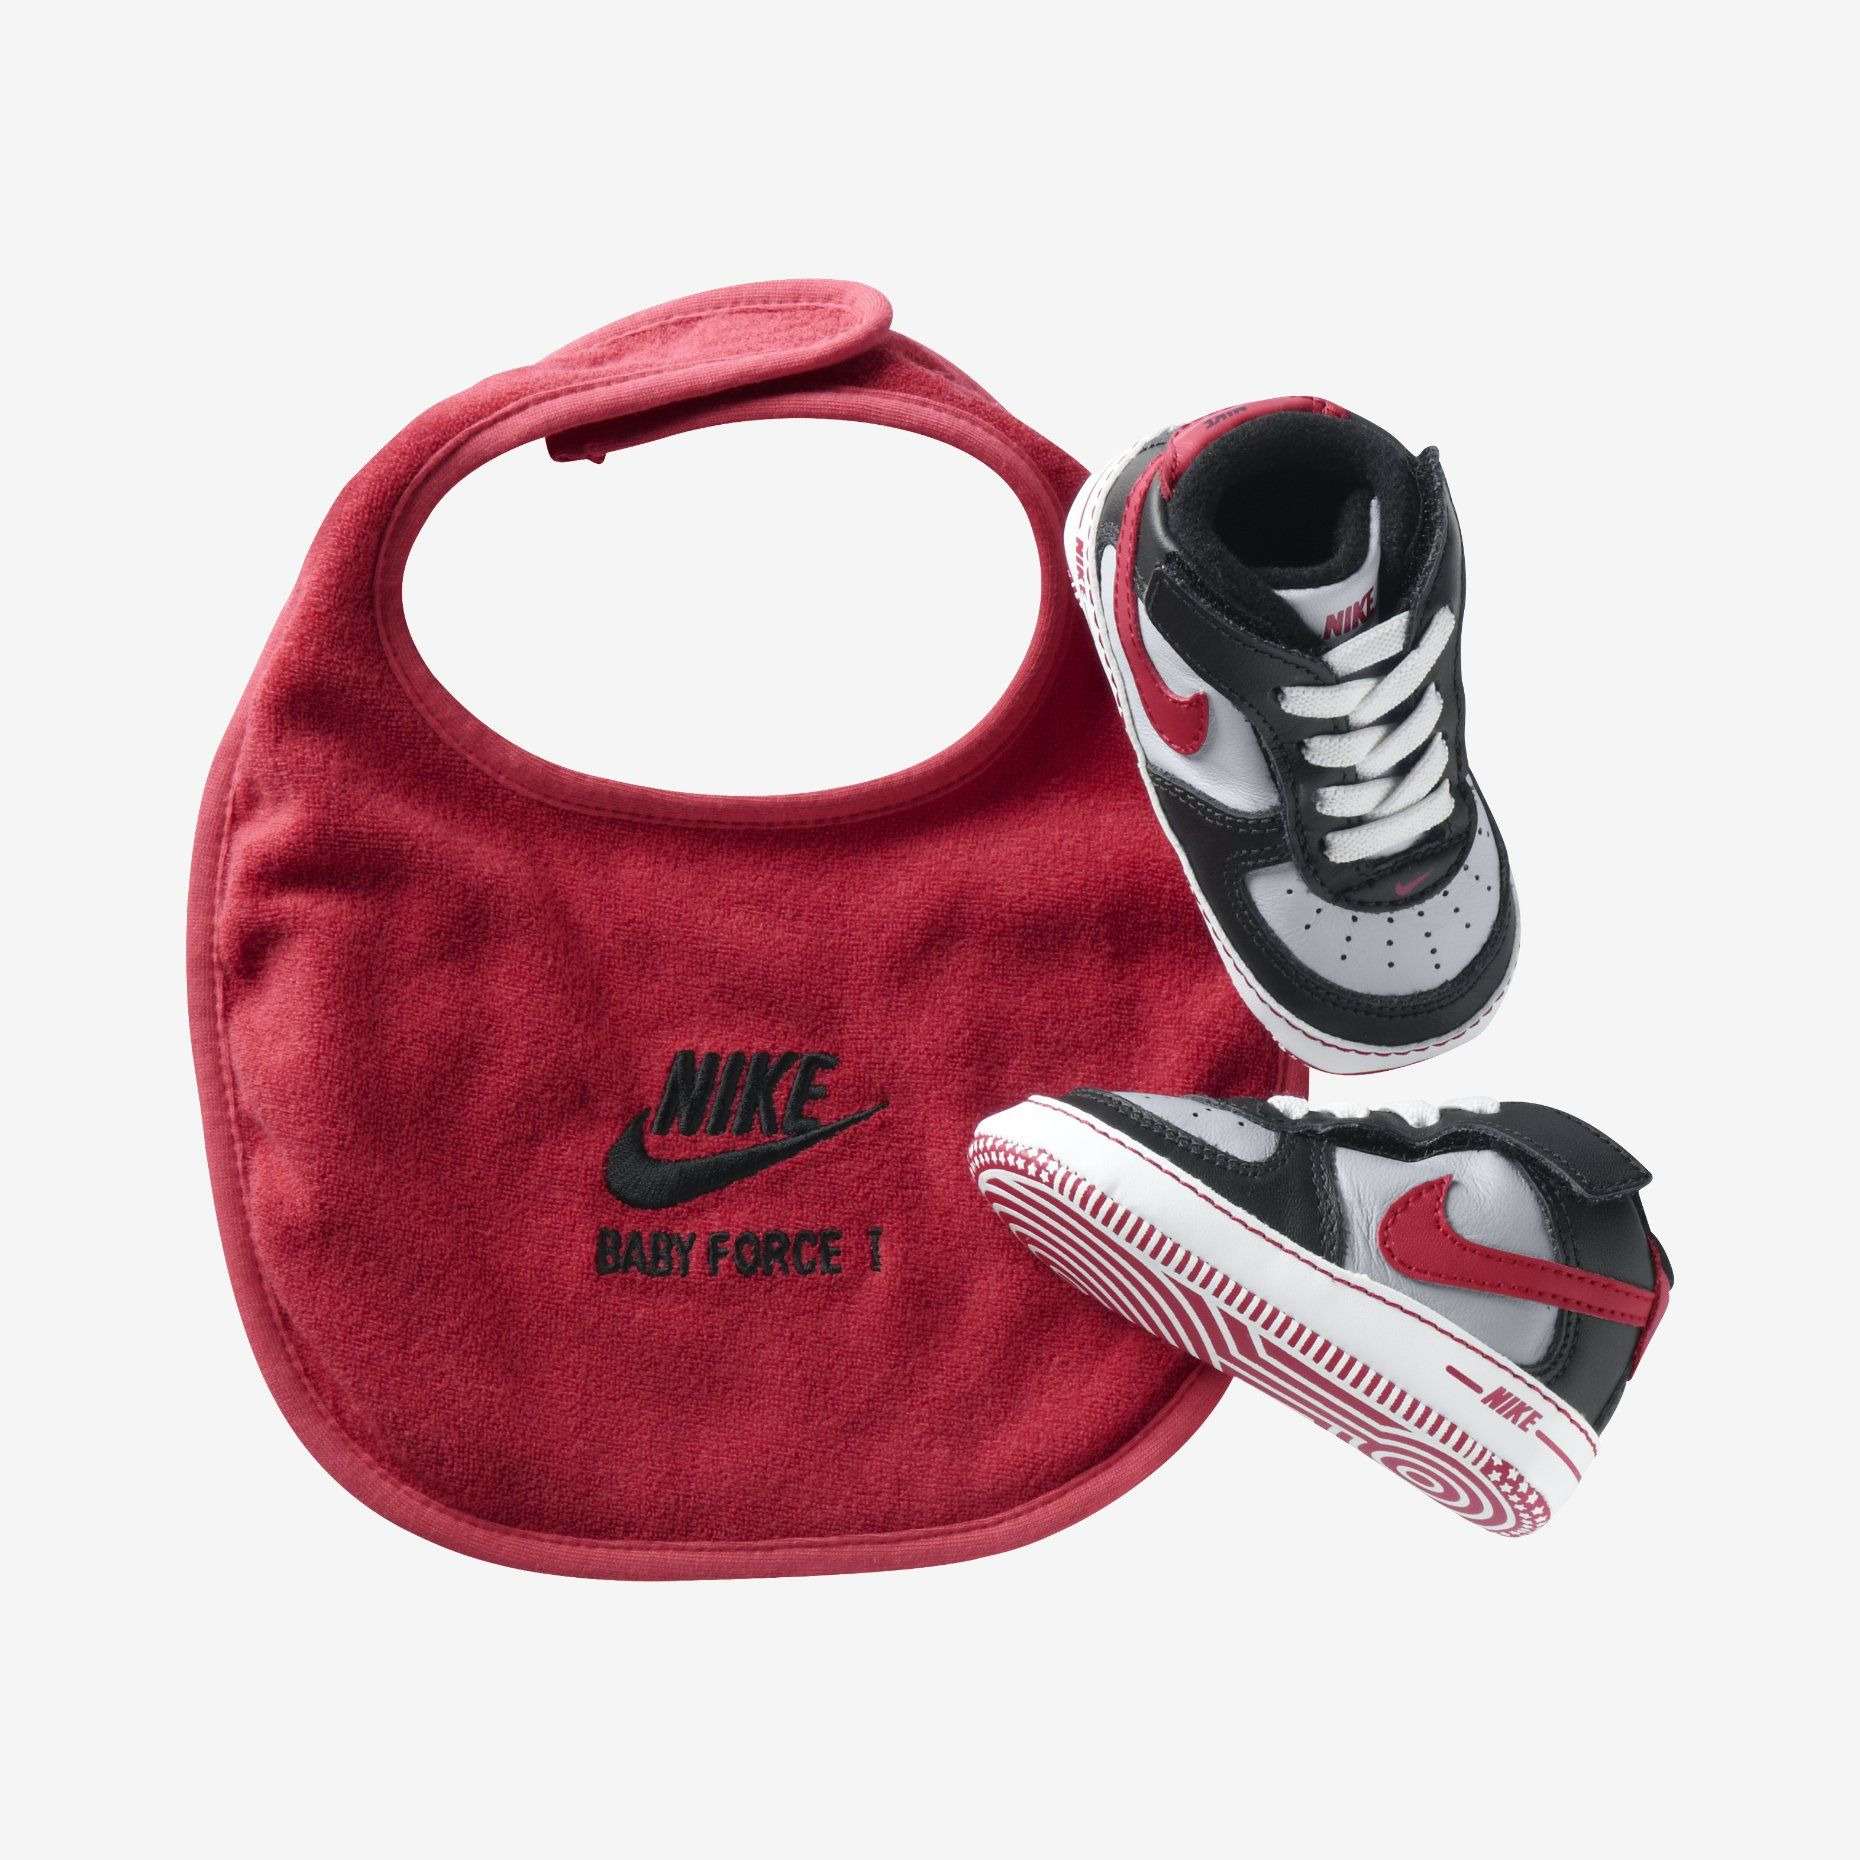 Nike Store. Nike Air Force 1 (04c) Newborn Kids' Gift